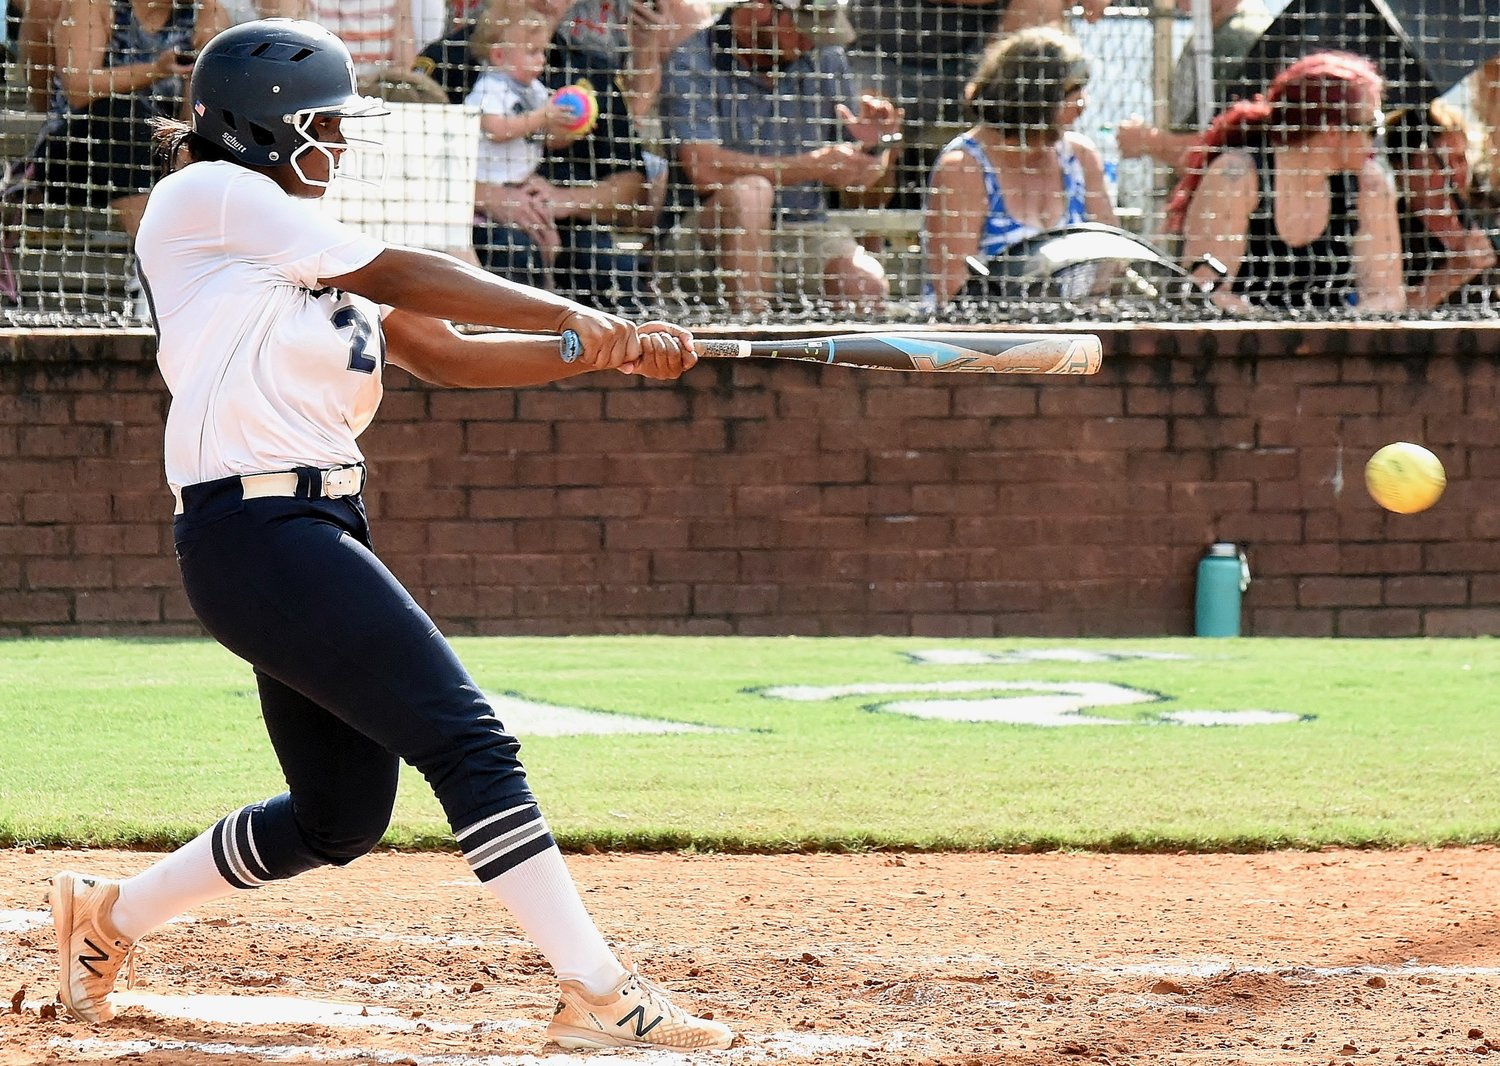 Woodland junior Michiah Hicks hits an RBI double during Game 1 of a Region 7-AAAAA doubleheader against Cartersville Tuesday at home. She finished 3-for-6 across both games with a walk, a run scored and two RBIs, as the Wildcats swept the Canes.